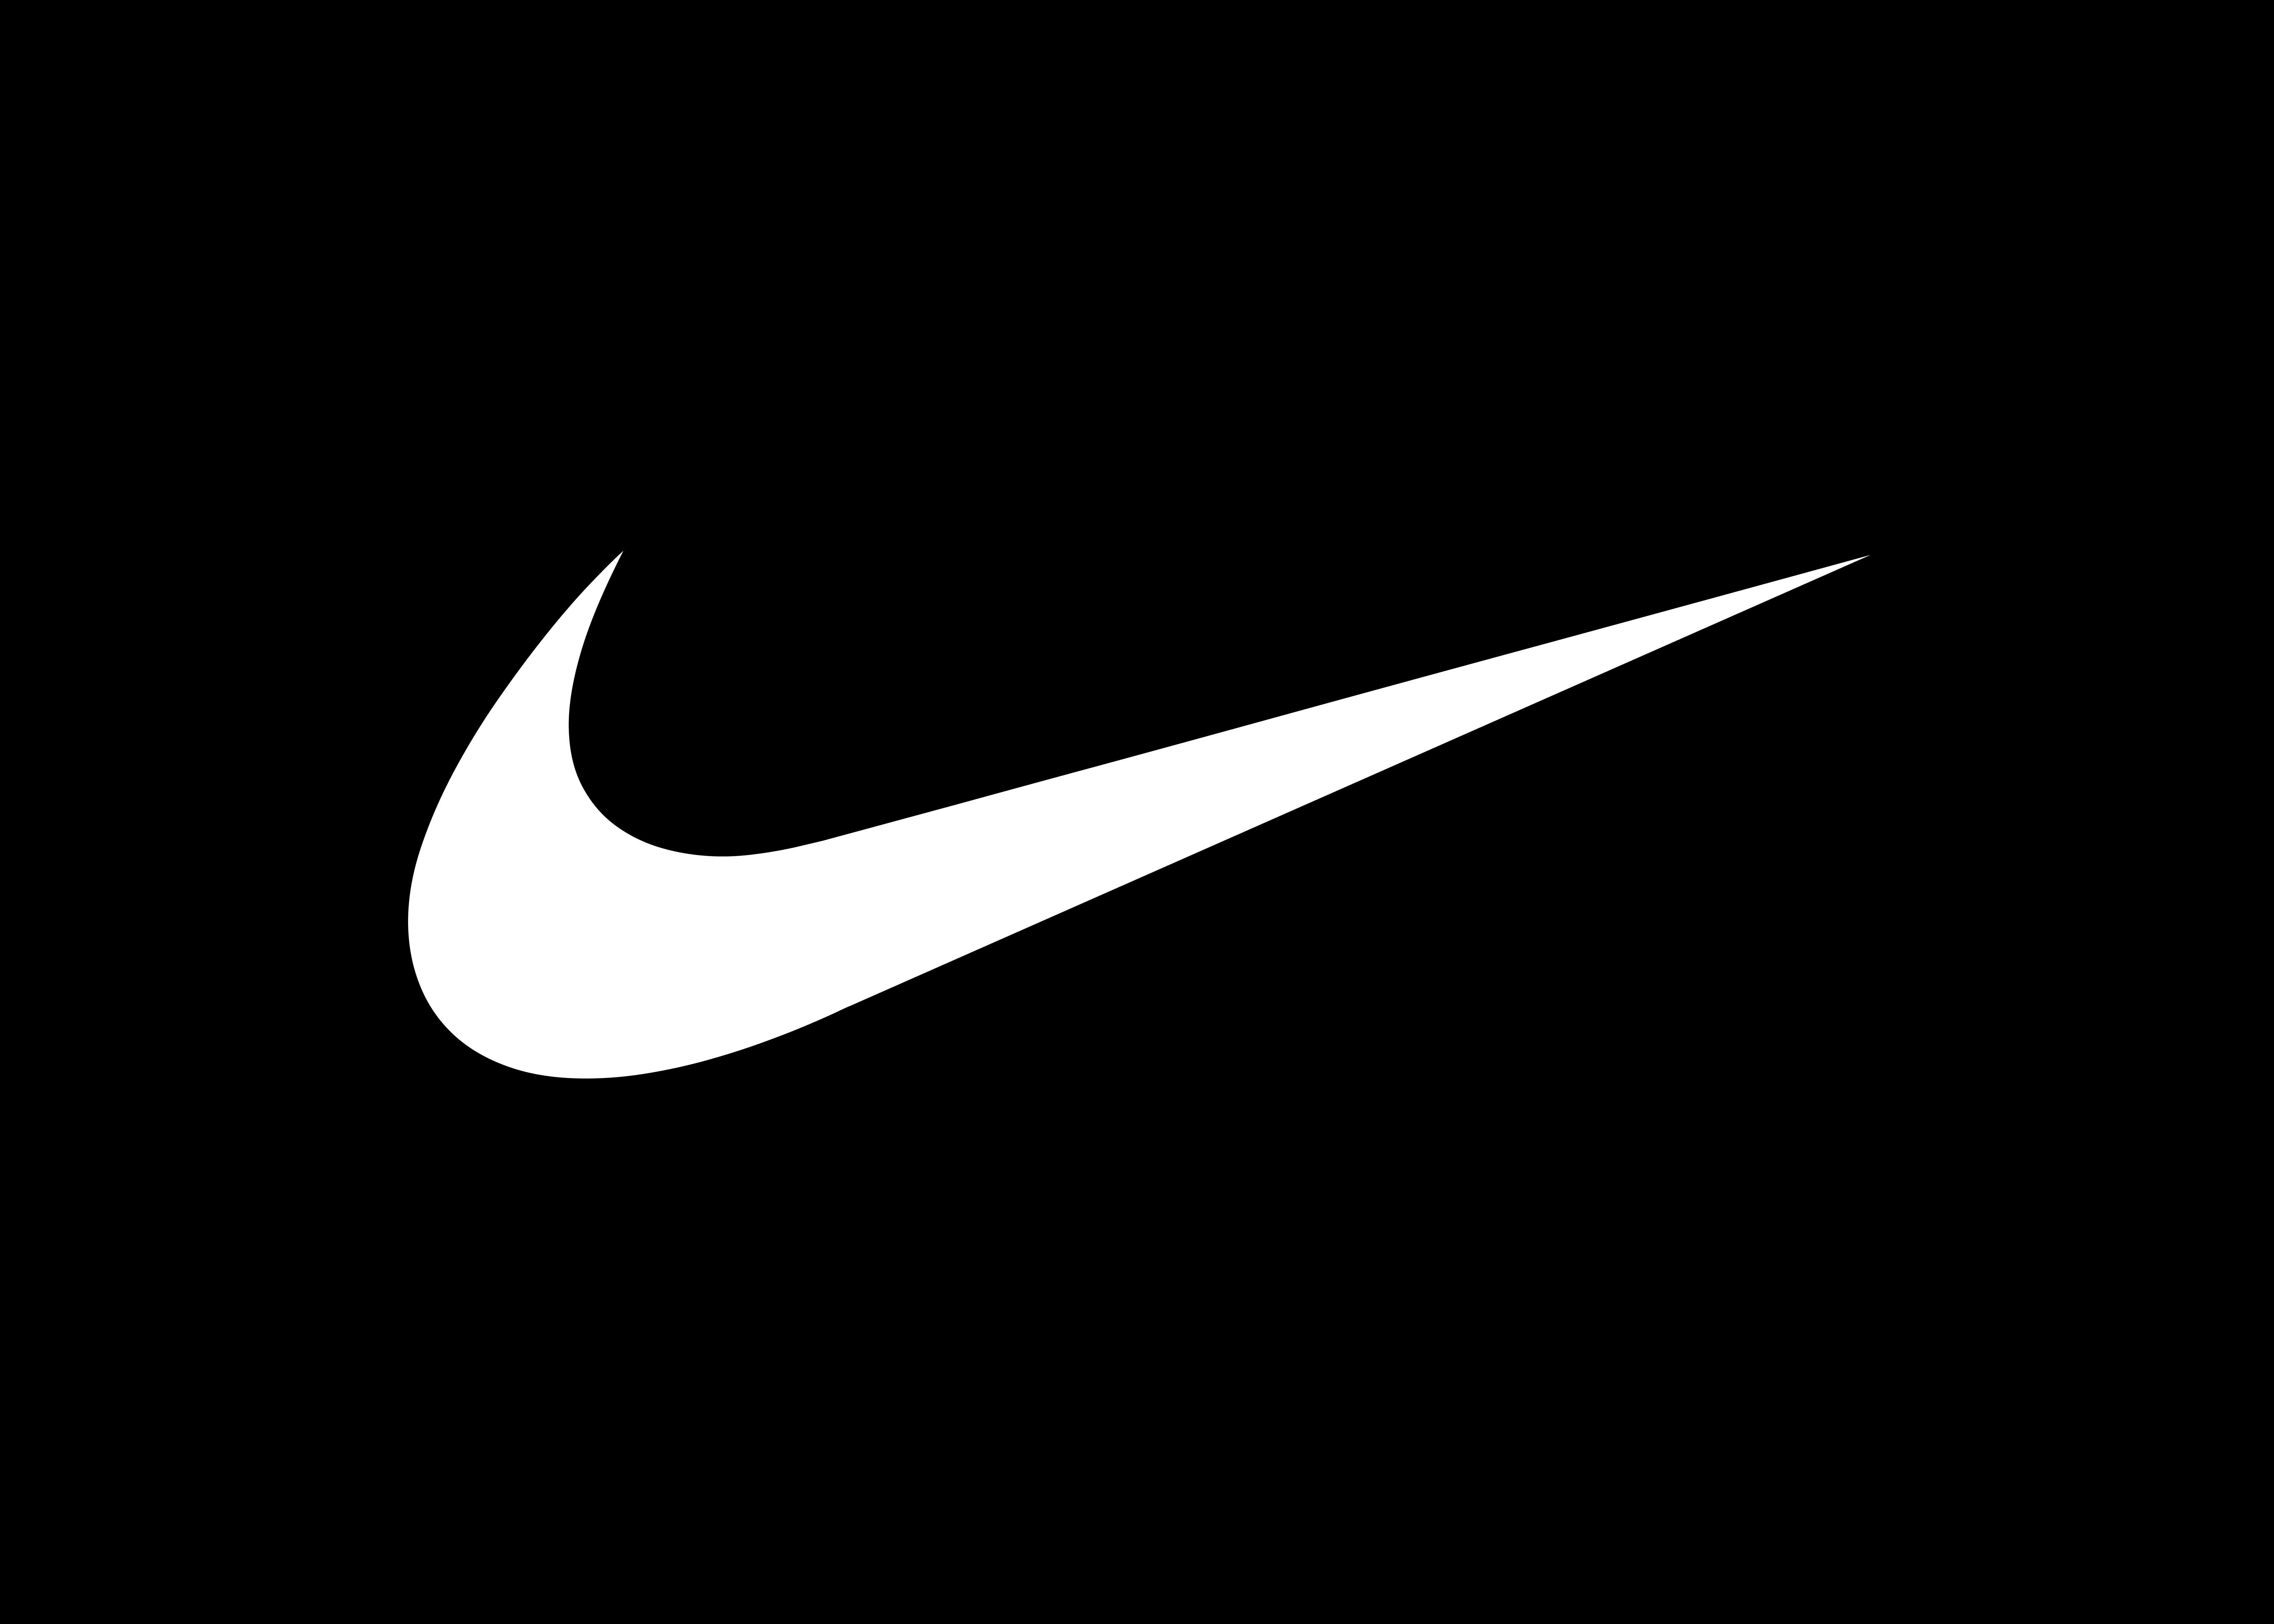 White And Black Nike Logo High Resolution In HD Wallpaper 7216x5154